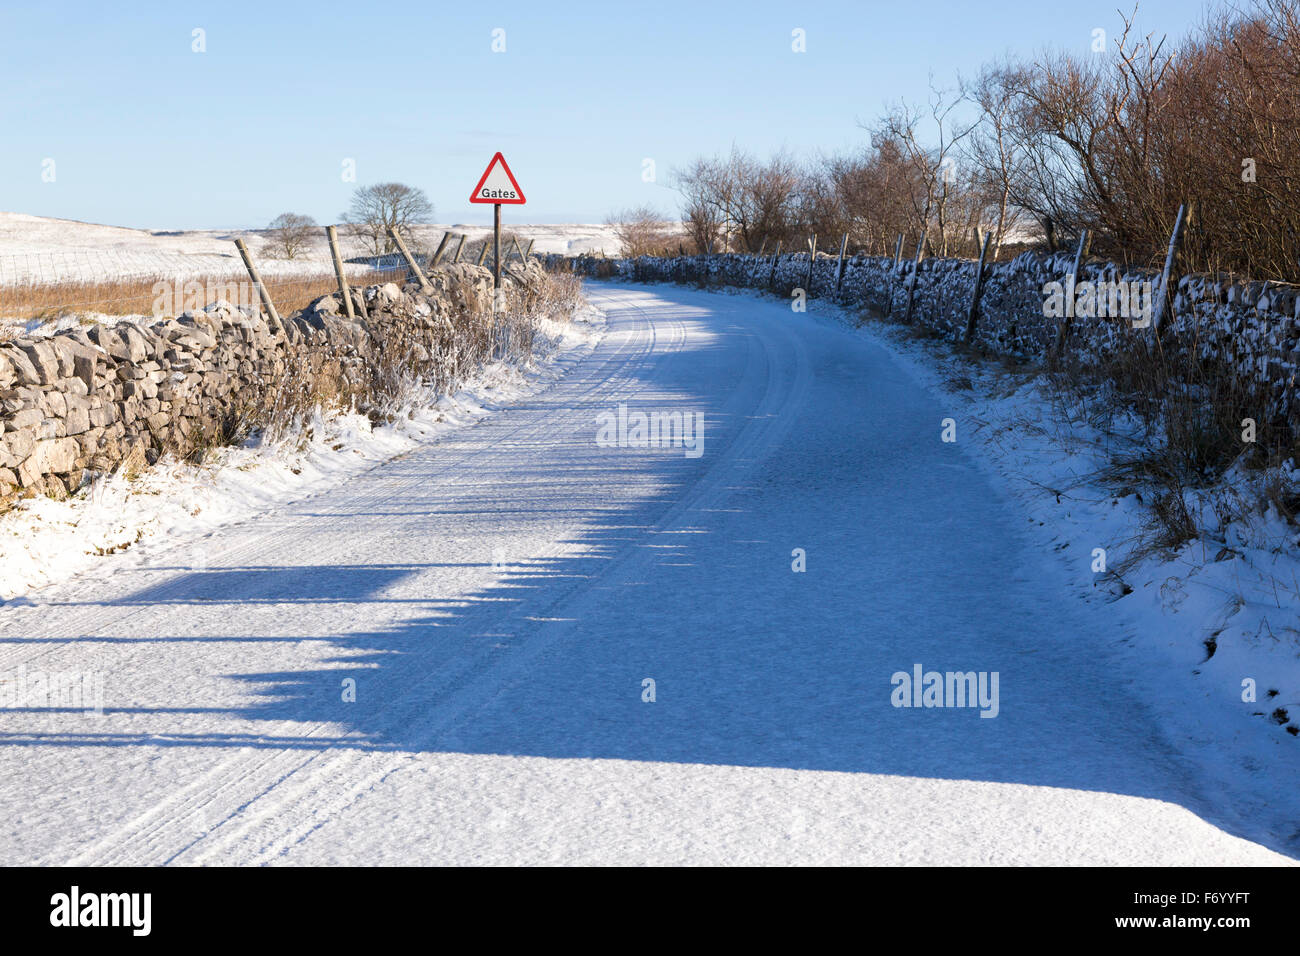 Snow covered road on Malham Moor in winter with a warning sign - Stock Image